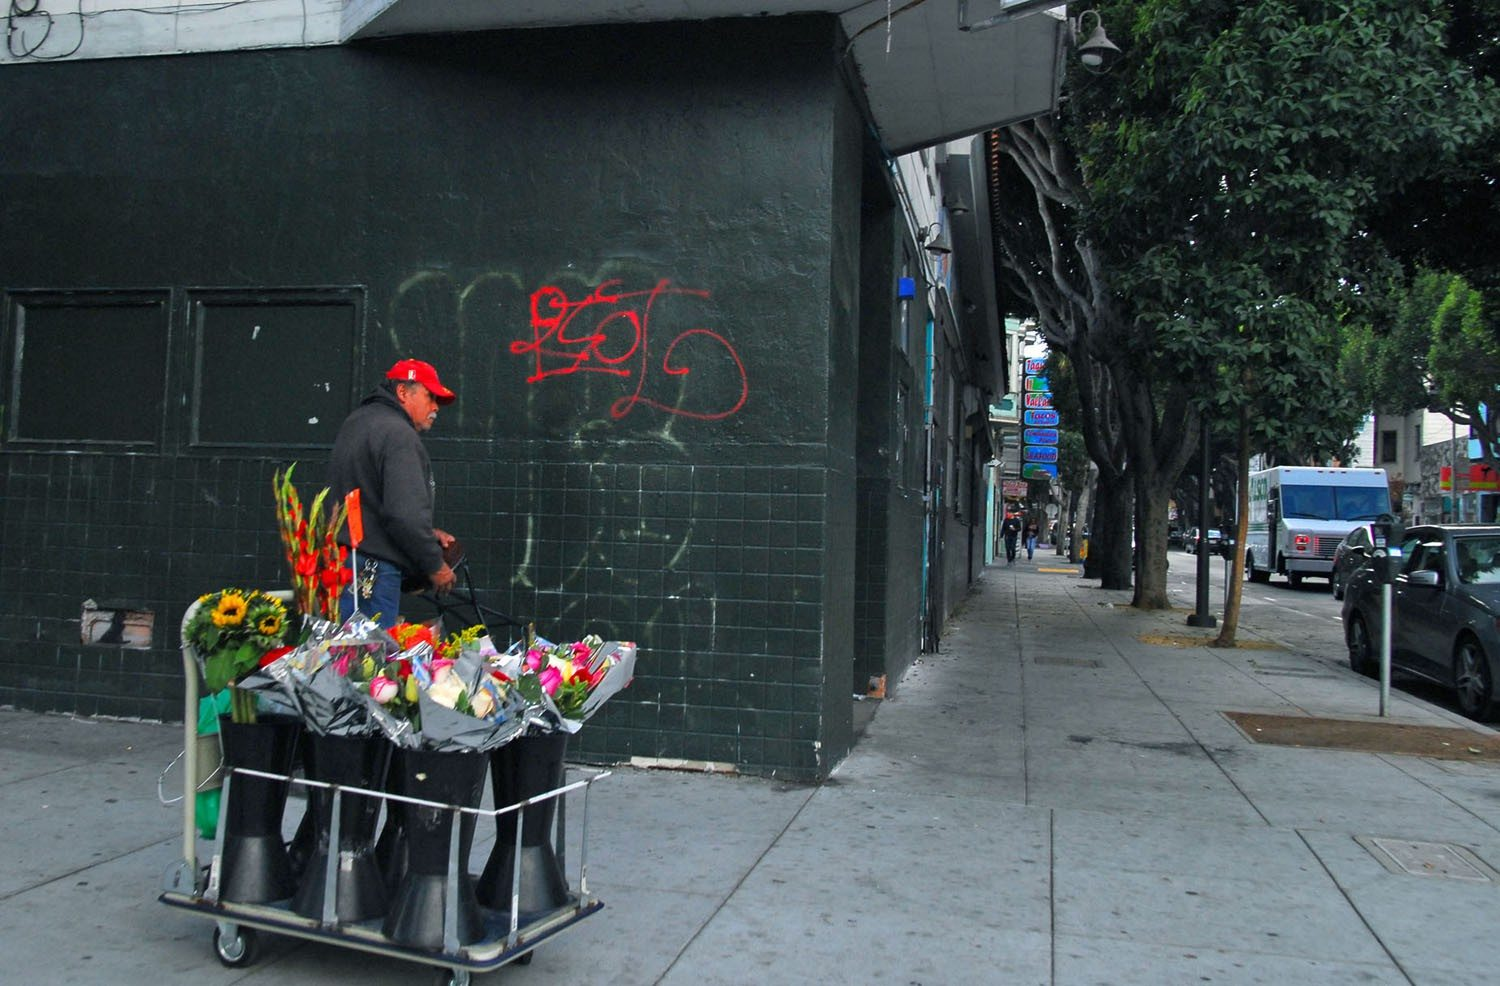 EVAN DUCHARME/SPECIAL TO THE  S.F. EXAMINERLondon Breed is proposing that vandals should pay to clean up their marks.